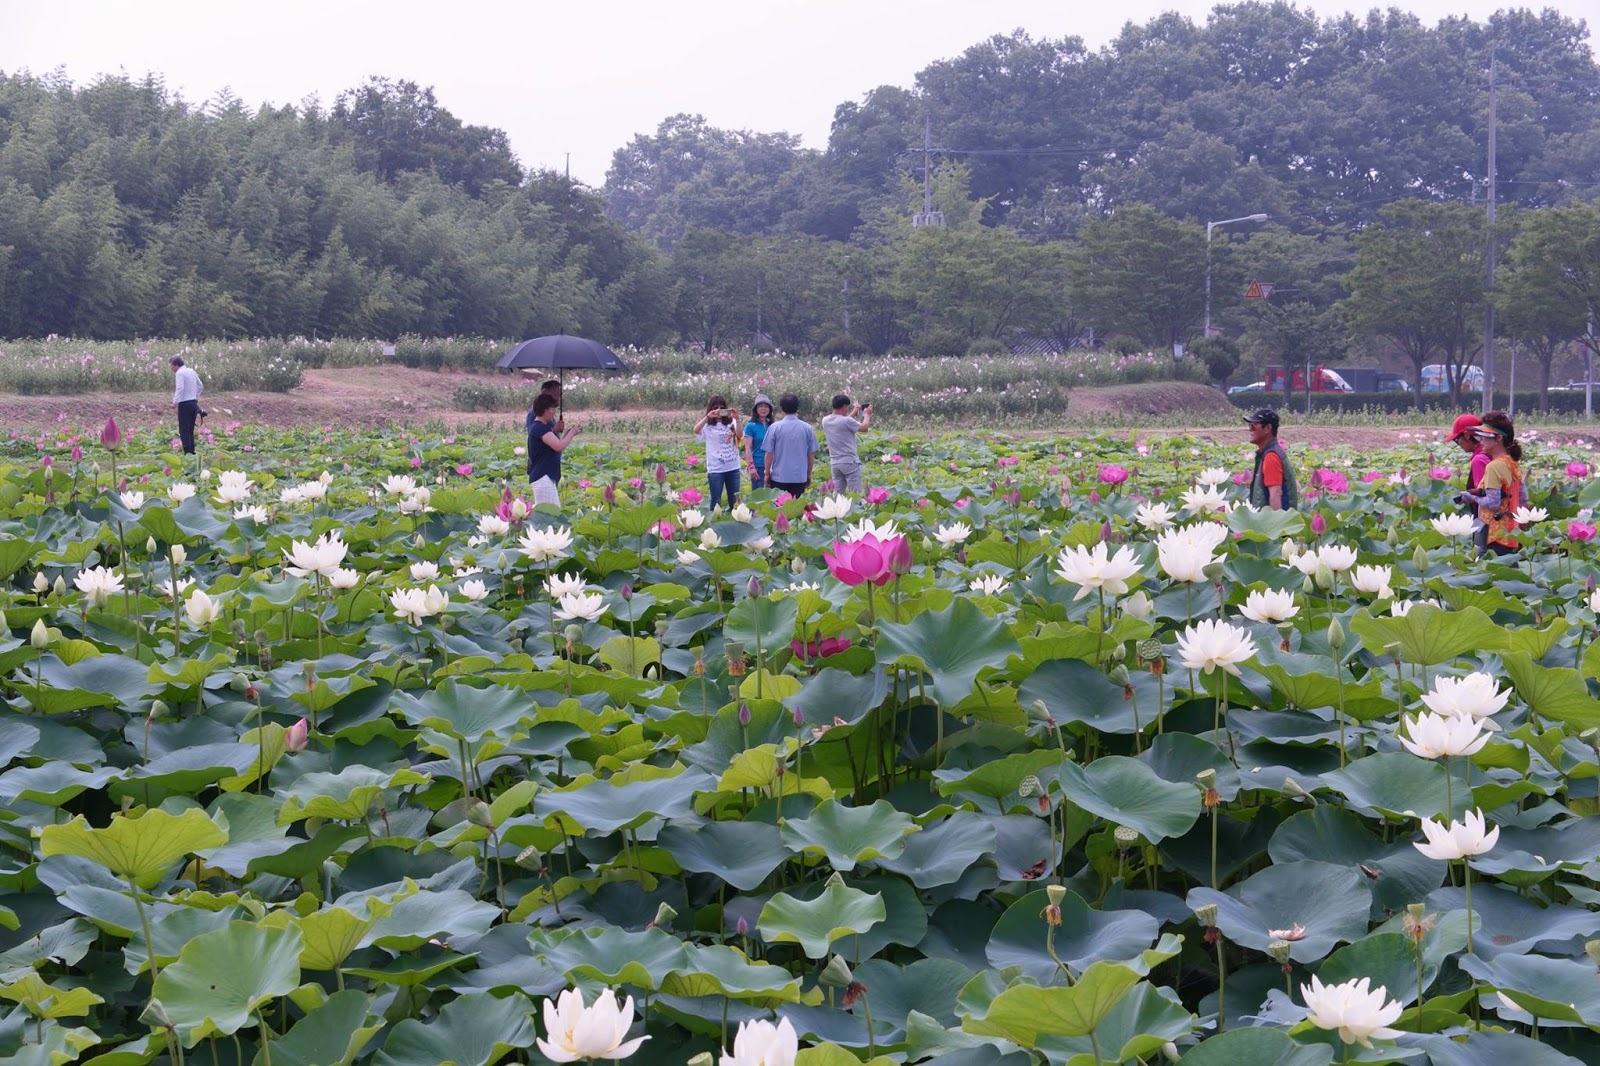 A Lotus Flower Is In Bloom On A Pond